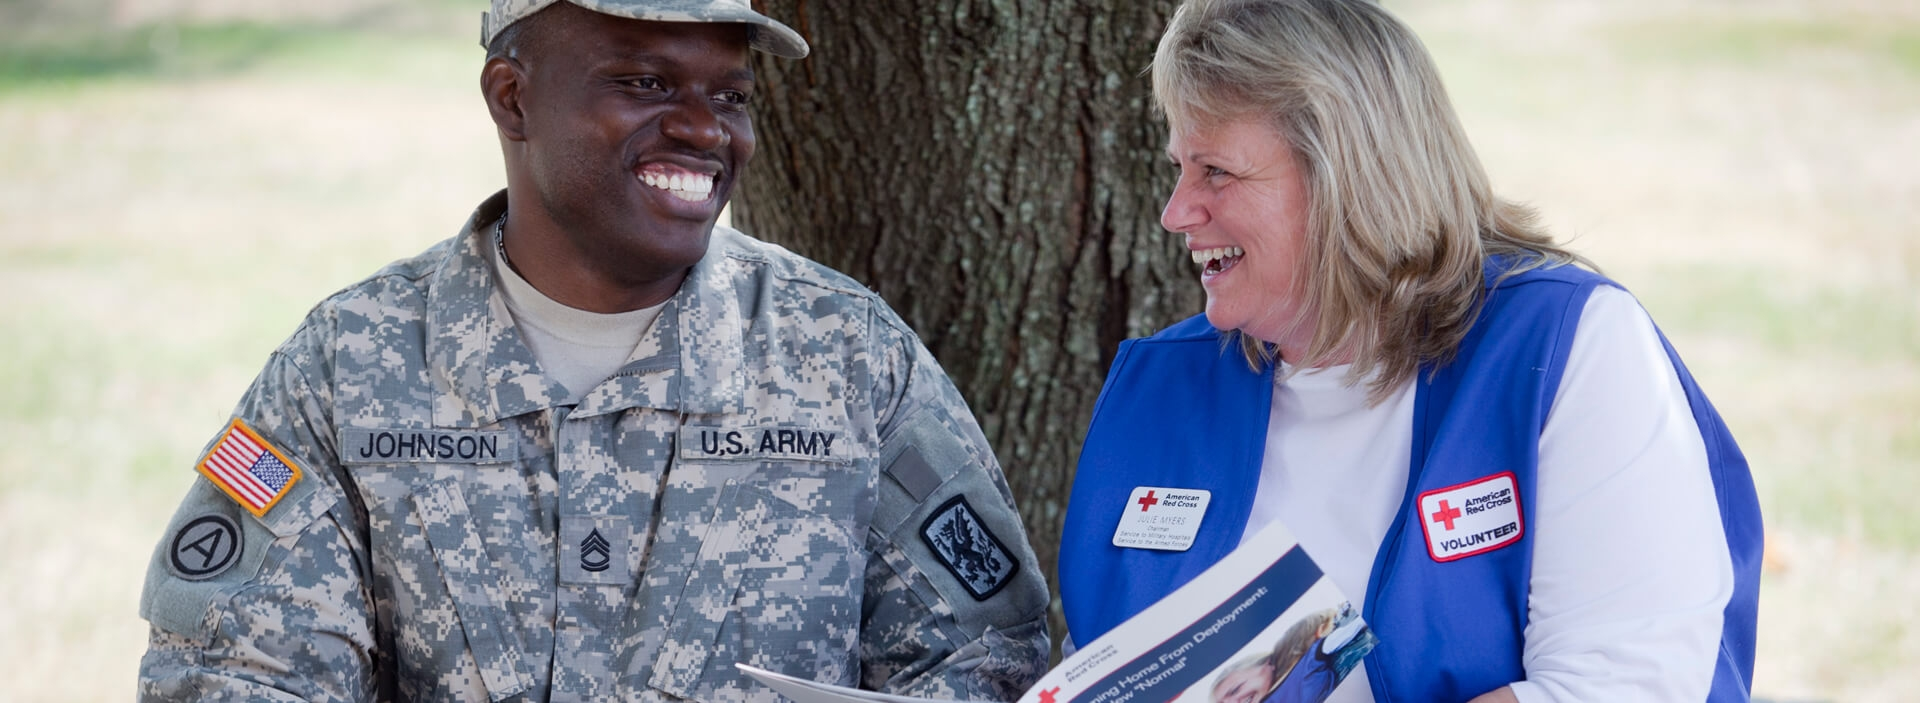 Red Cross volunteer providing information to a military personnel